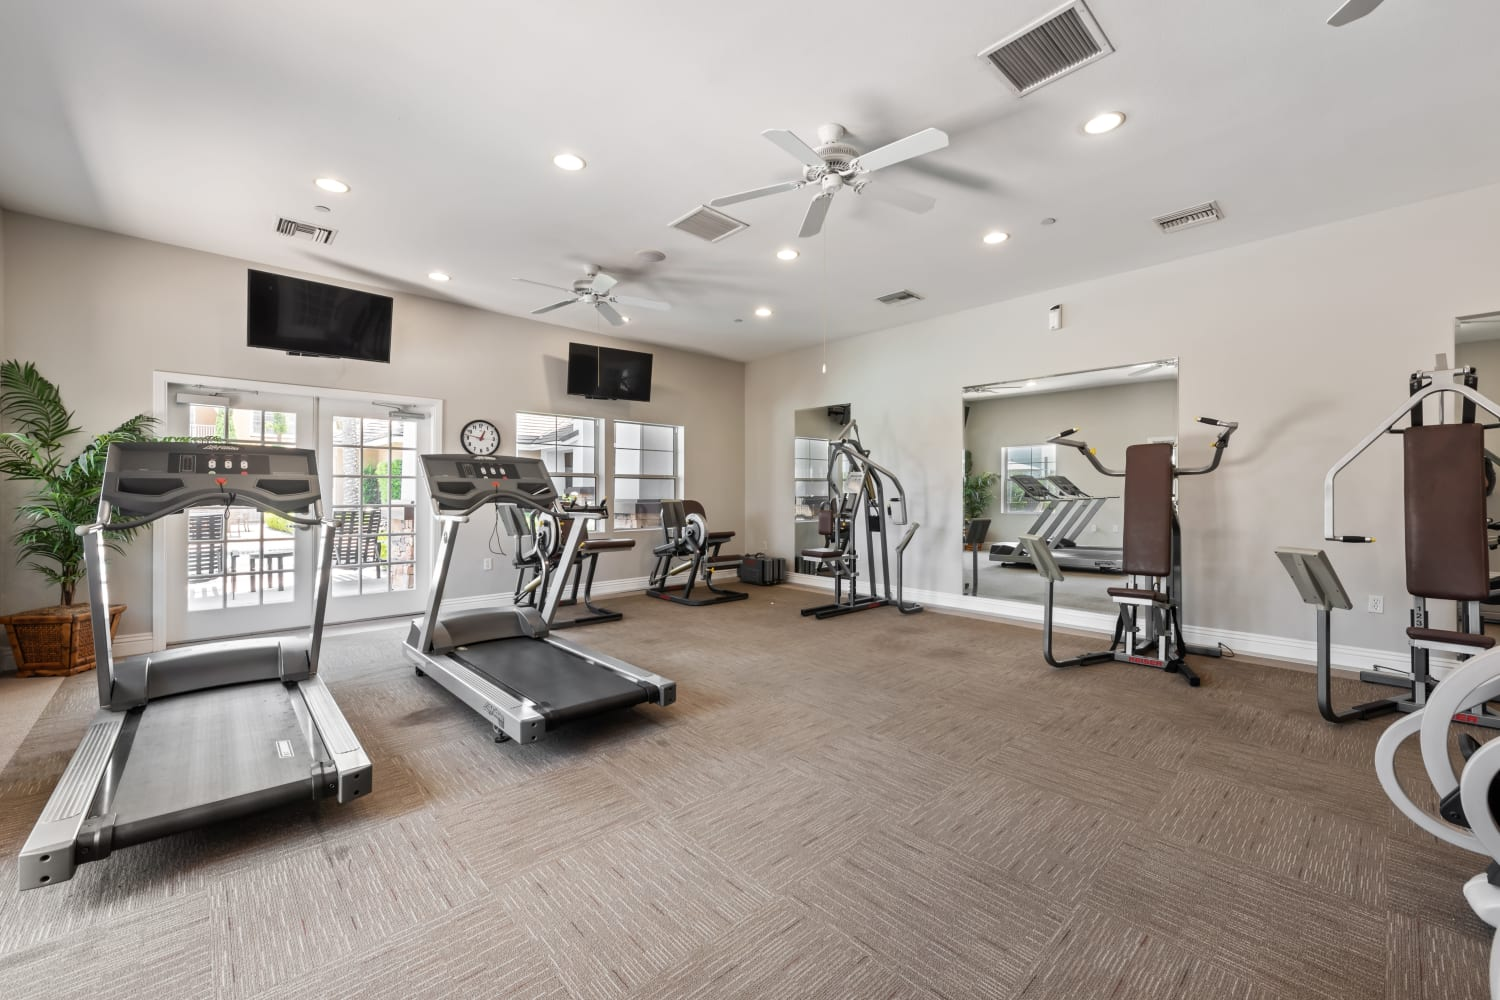 Fitness Center at The Village on 5th in Rancho Cucamonga, California